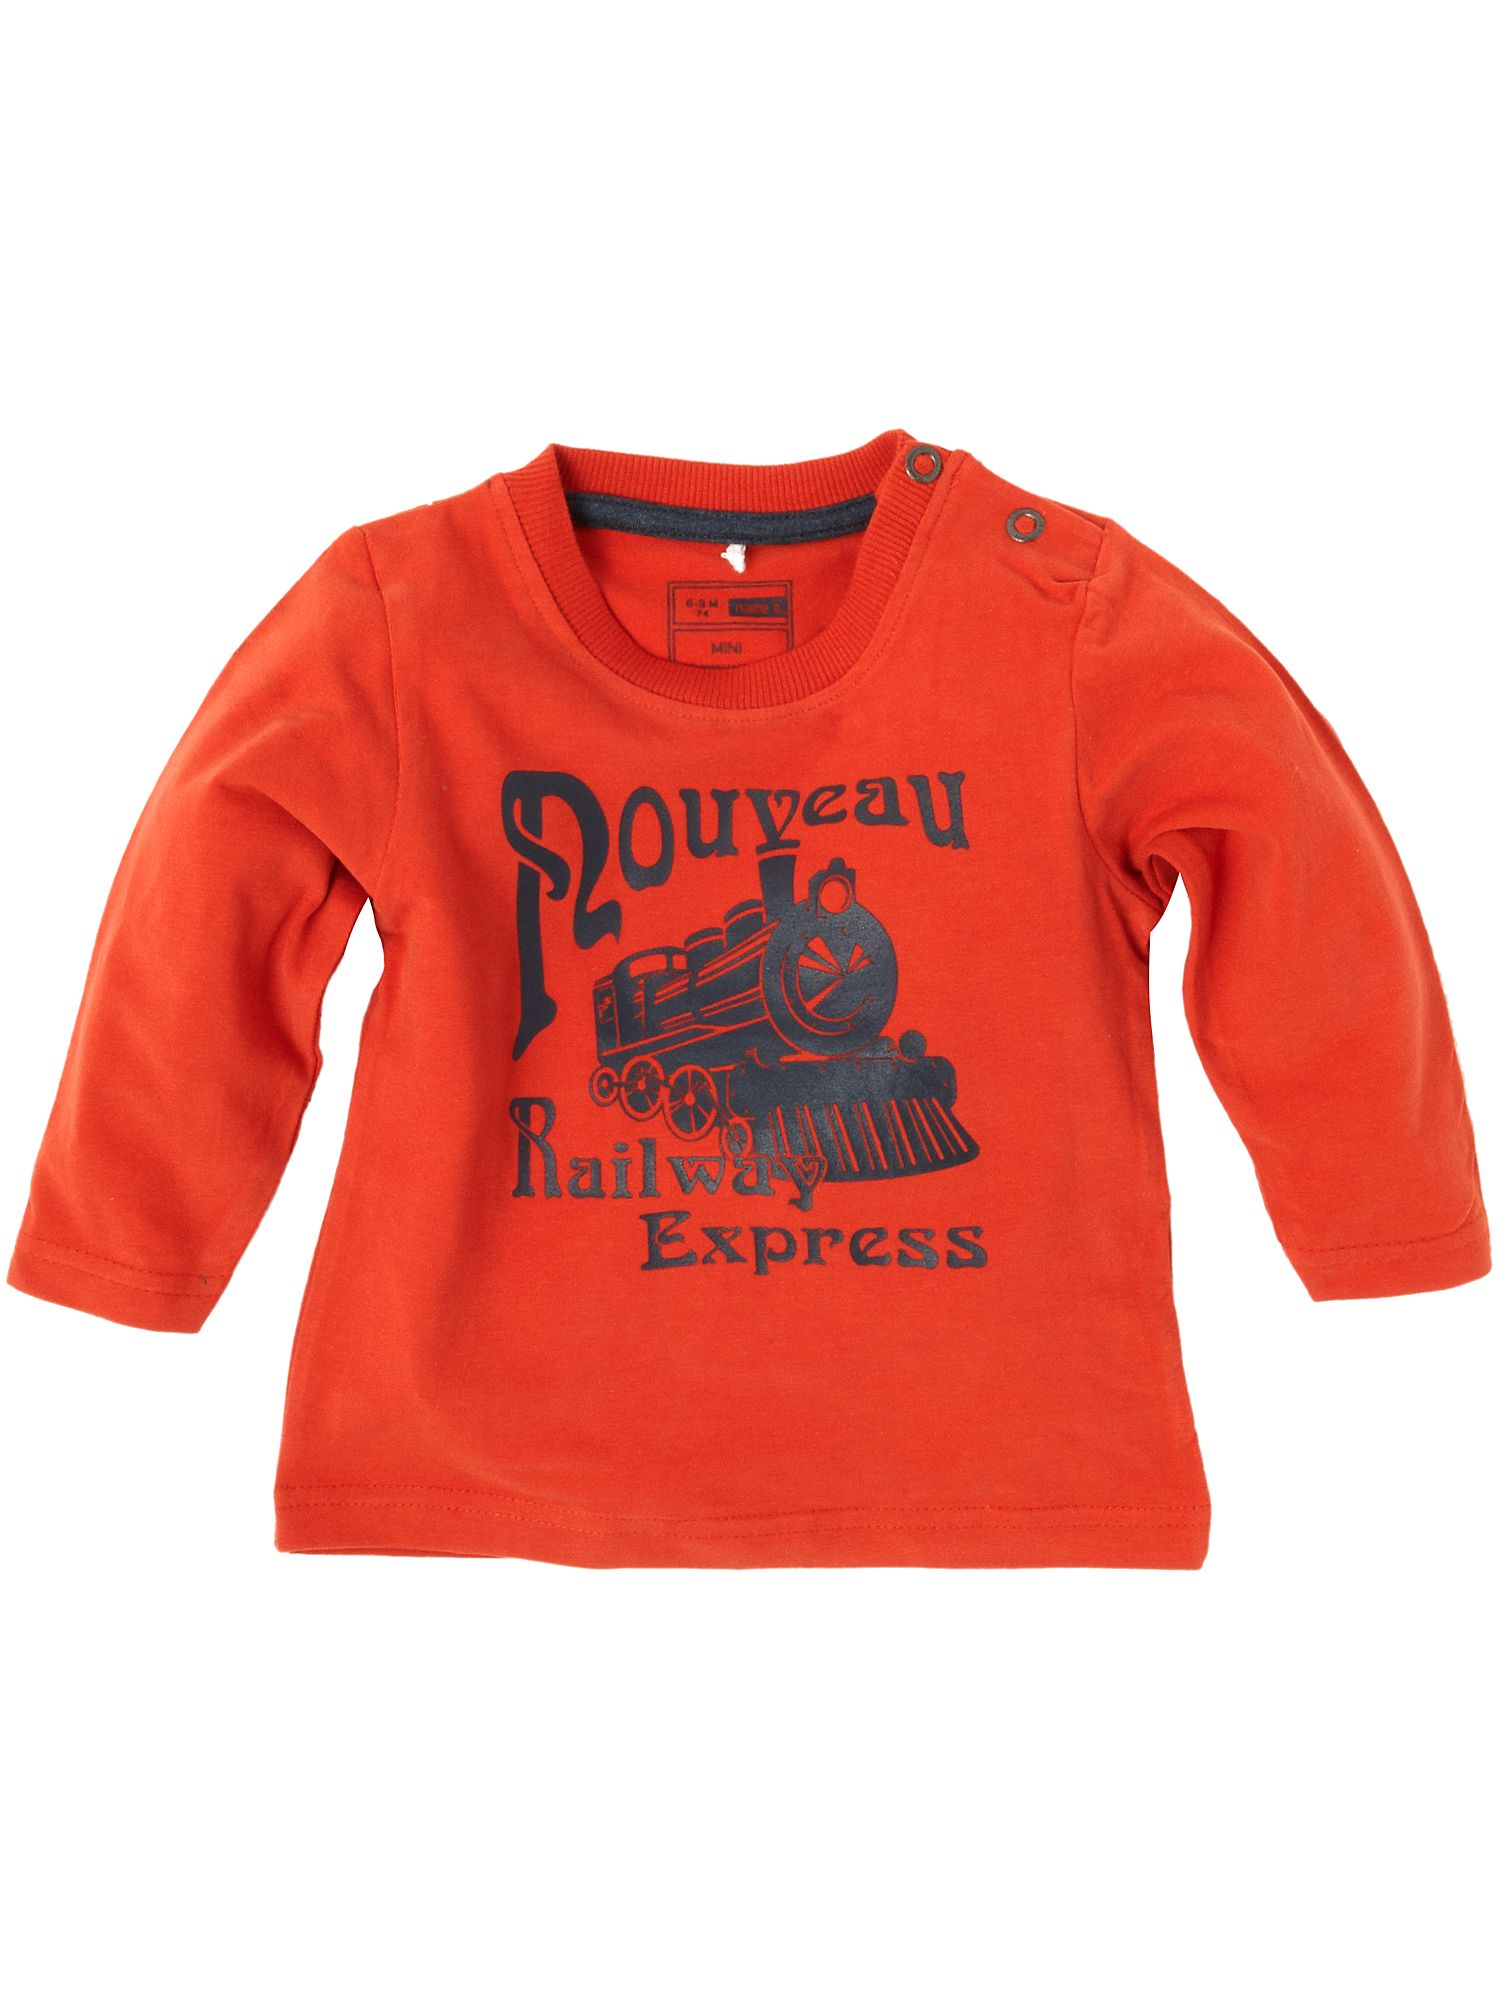 Name It Long-sleeved railway express printed T-shirt Red product image